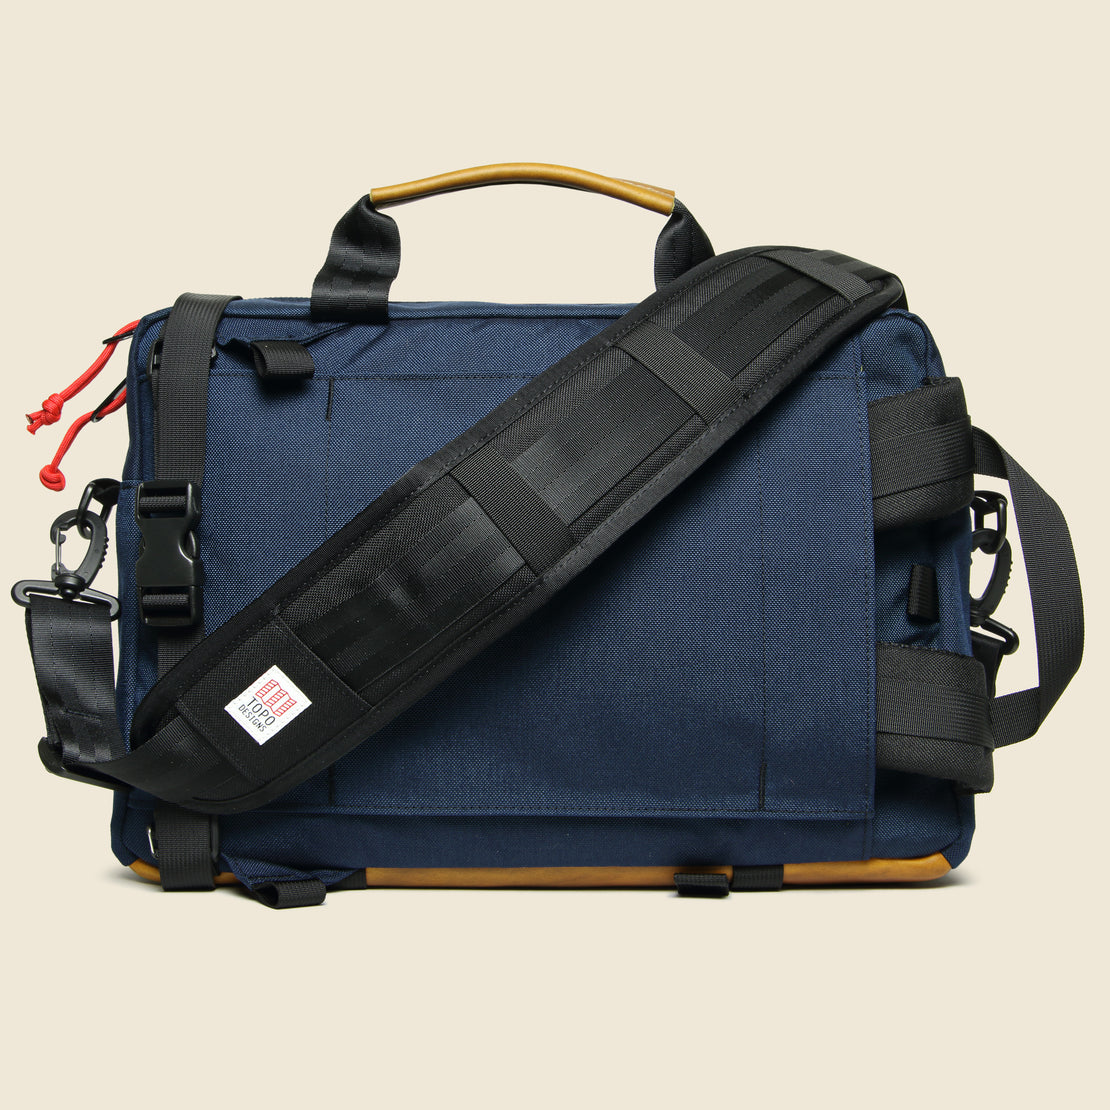 Commuter Briefcase - Navy/Brown Leather